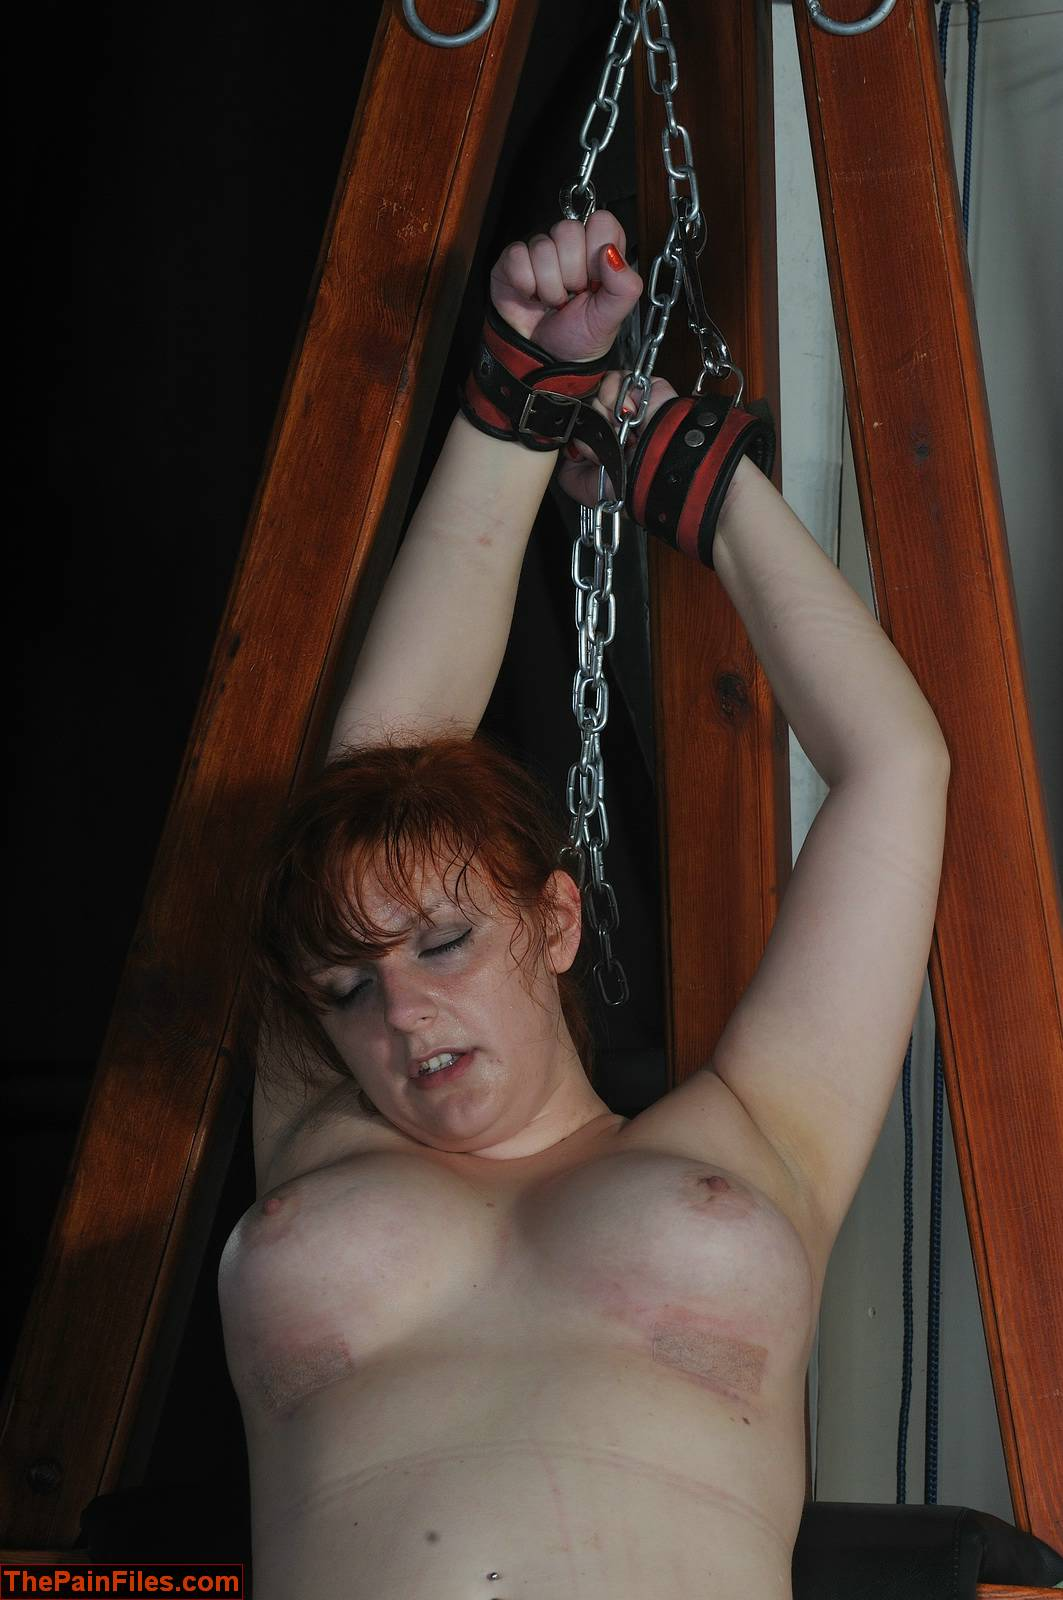 swedish dating sites extreme bondage